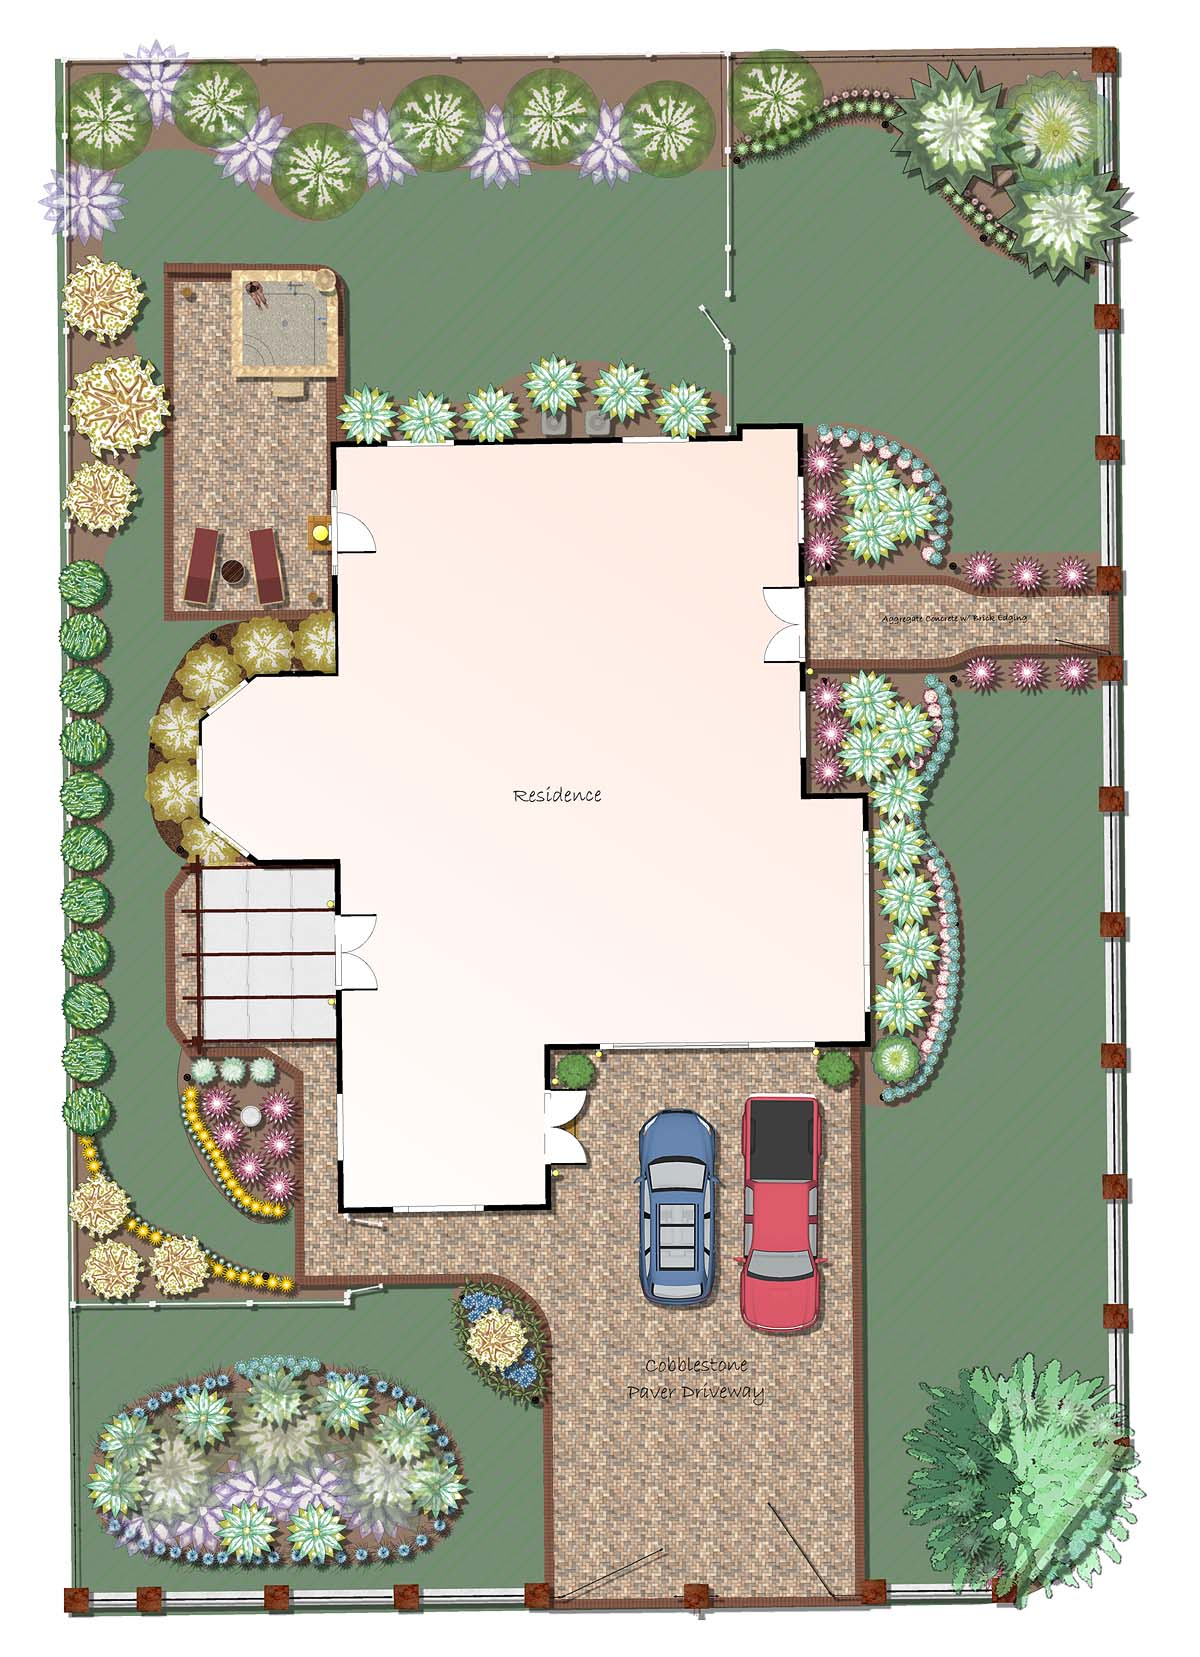 Professional landscape software for How to design garden layout